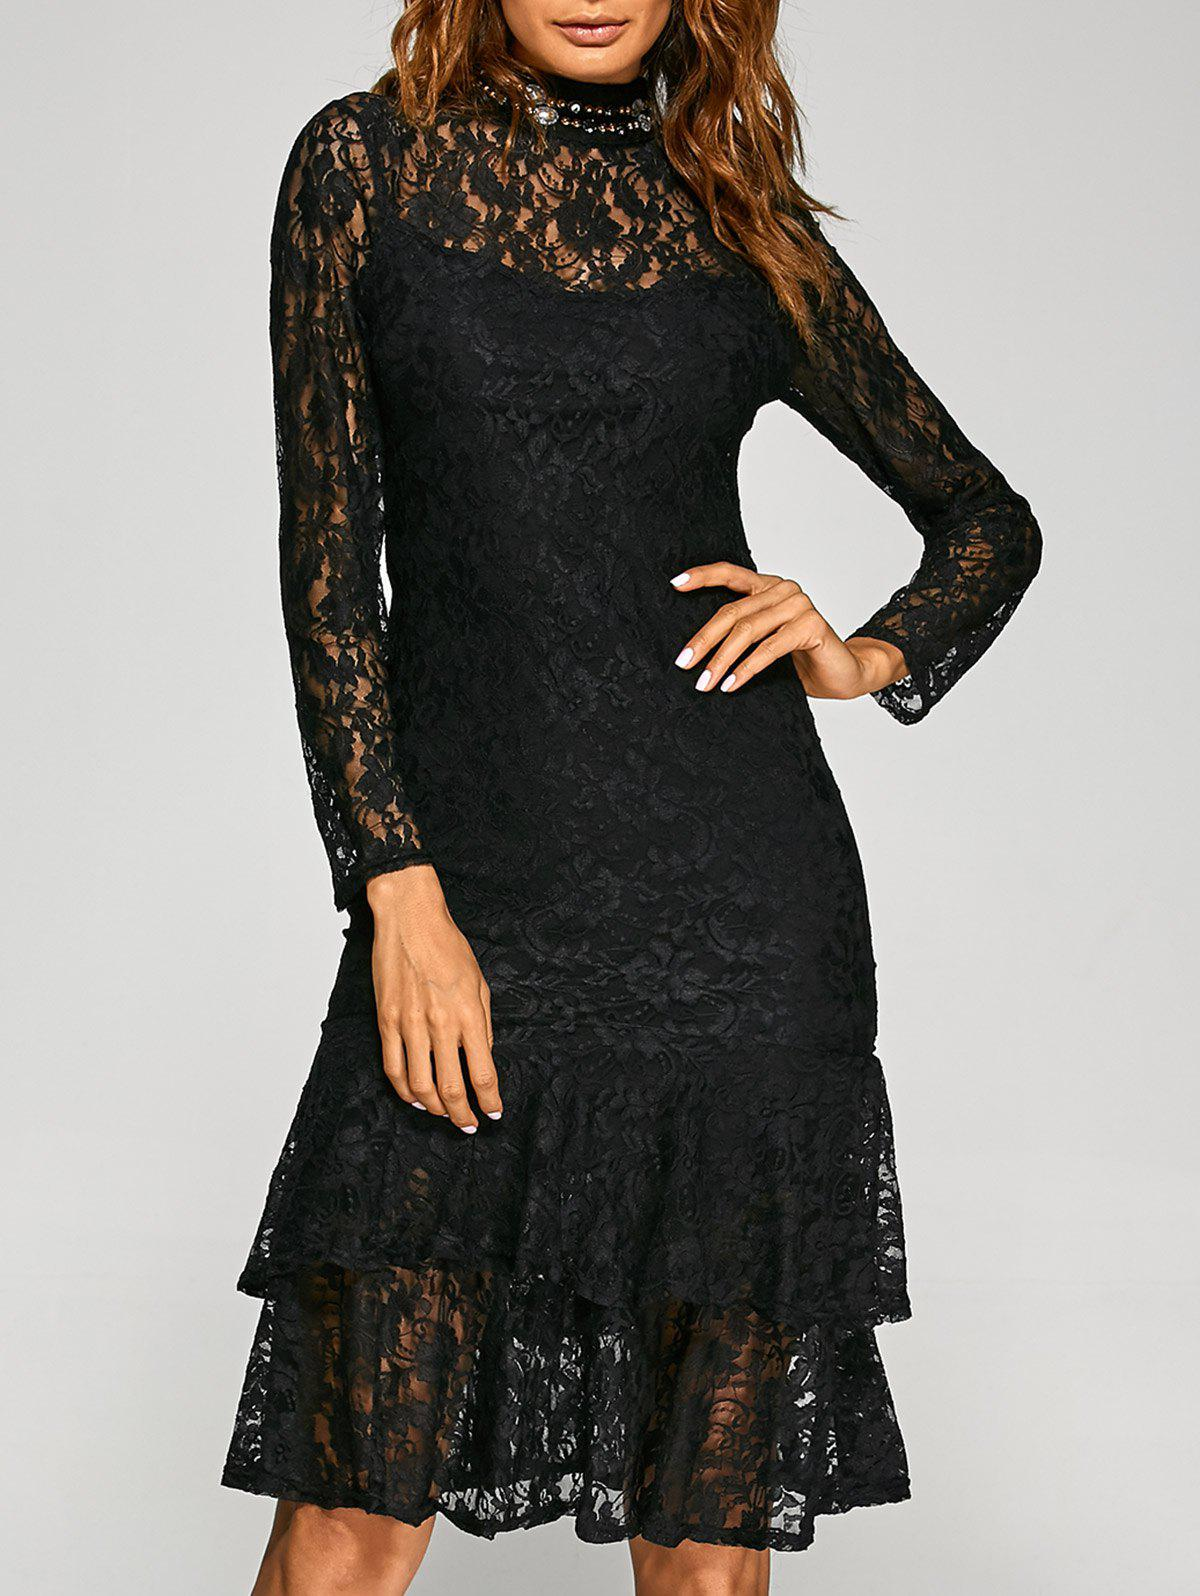 Buy High Neck Flounce Lace Prom Party Dress